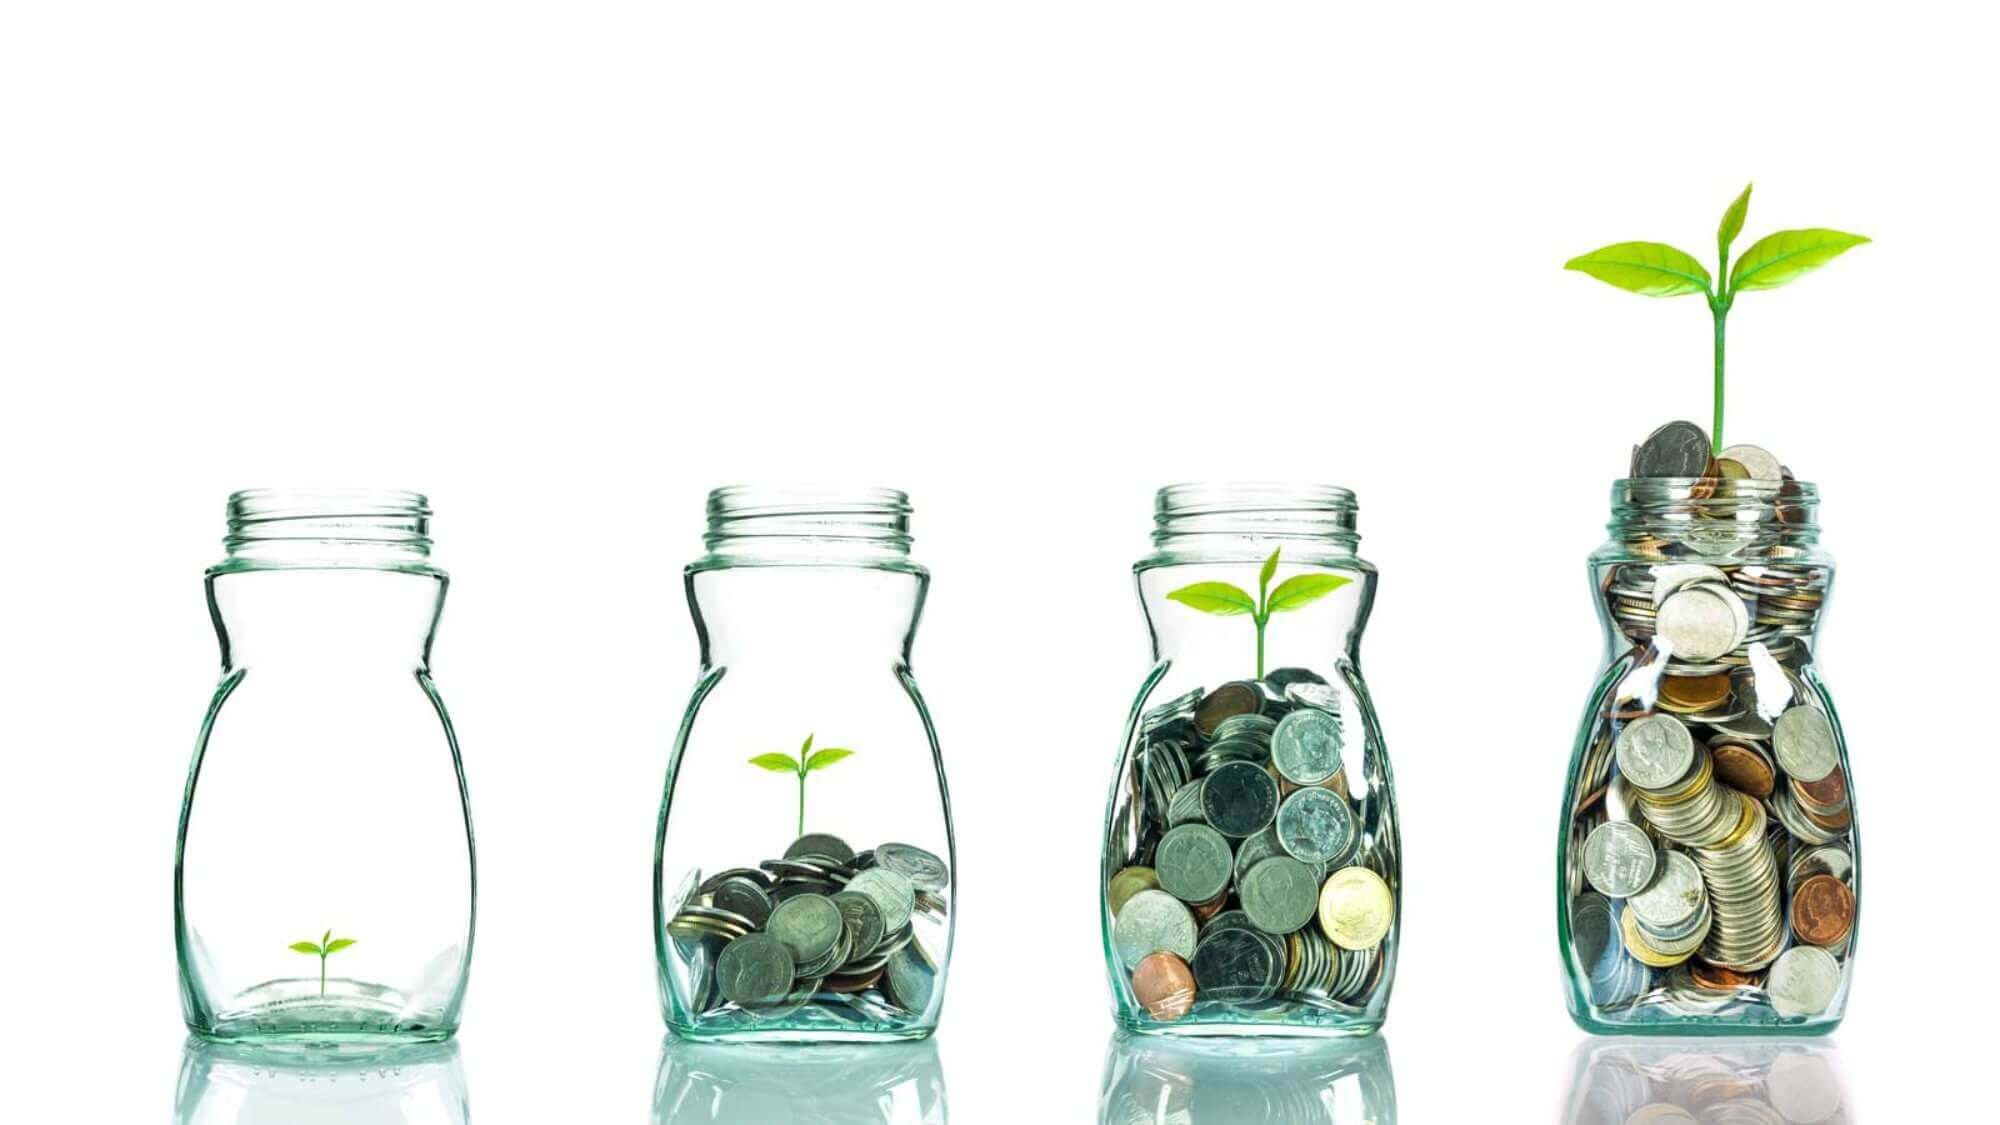 4 glass jars filling up with coins in the way hotels will start to fill up again in the future